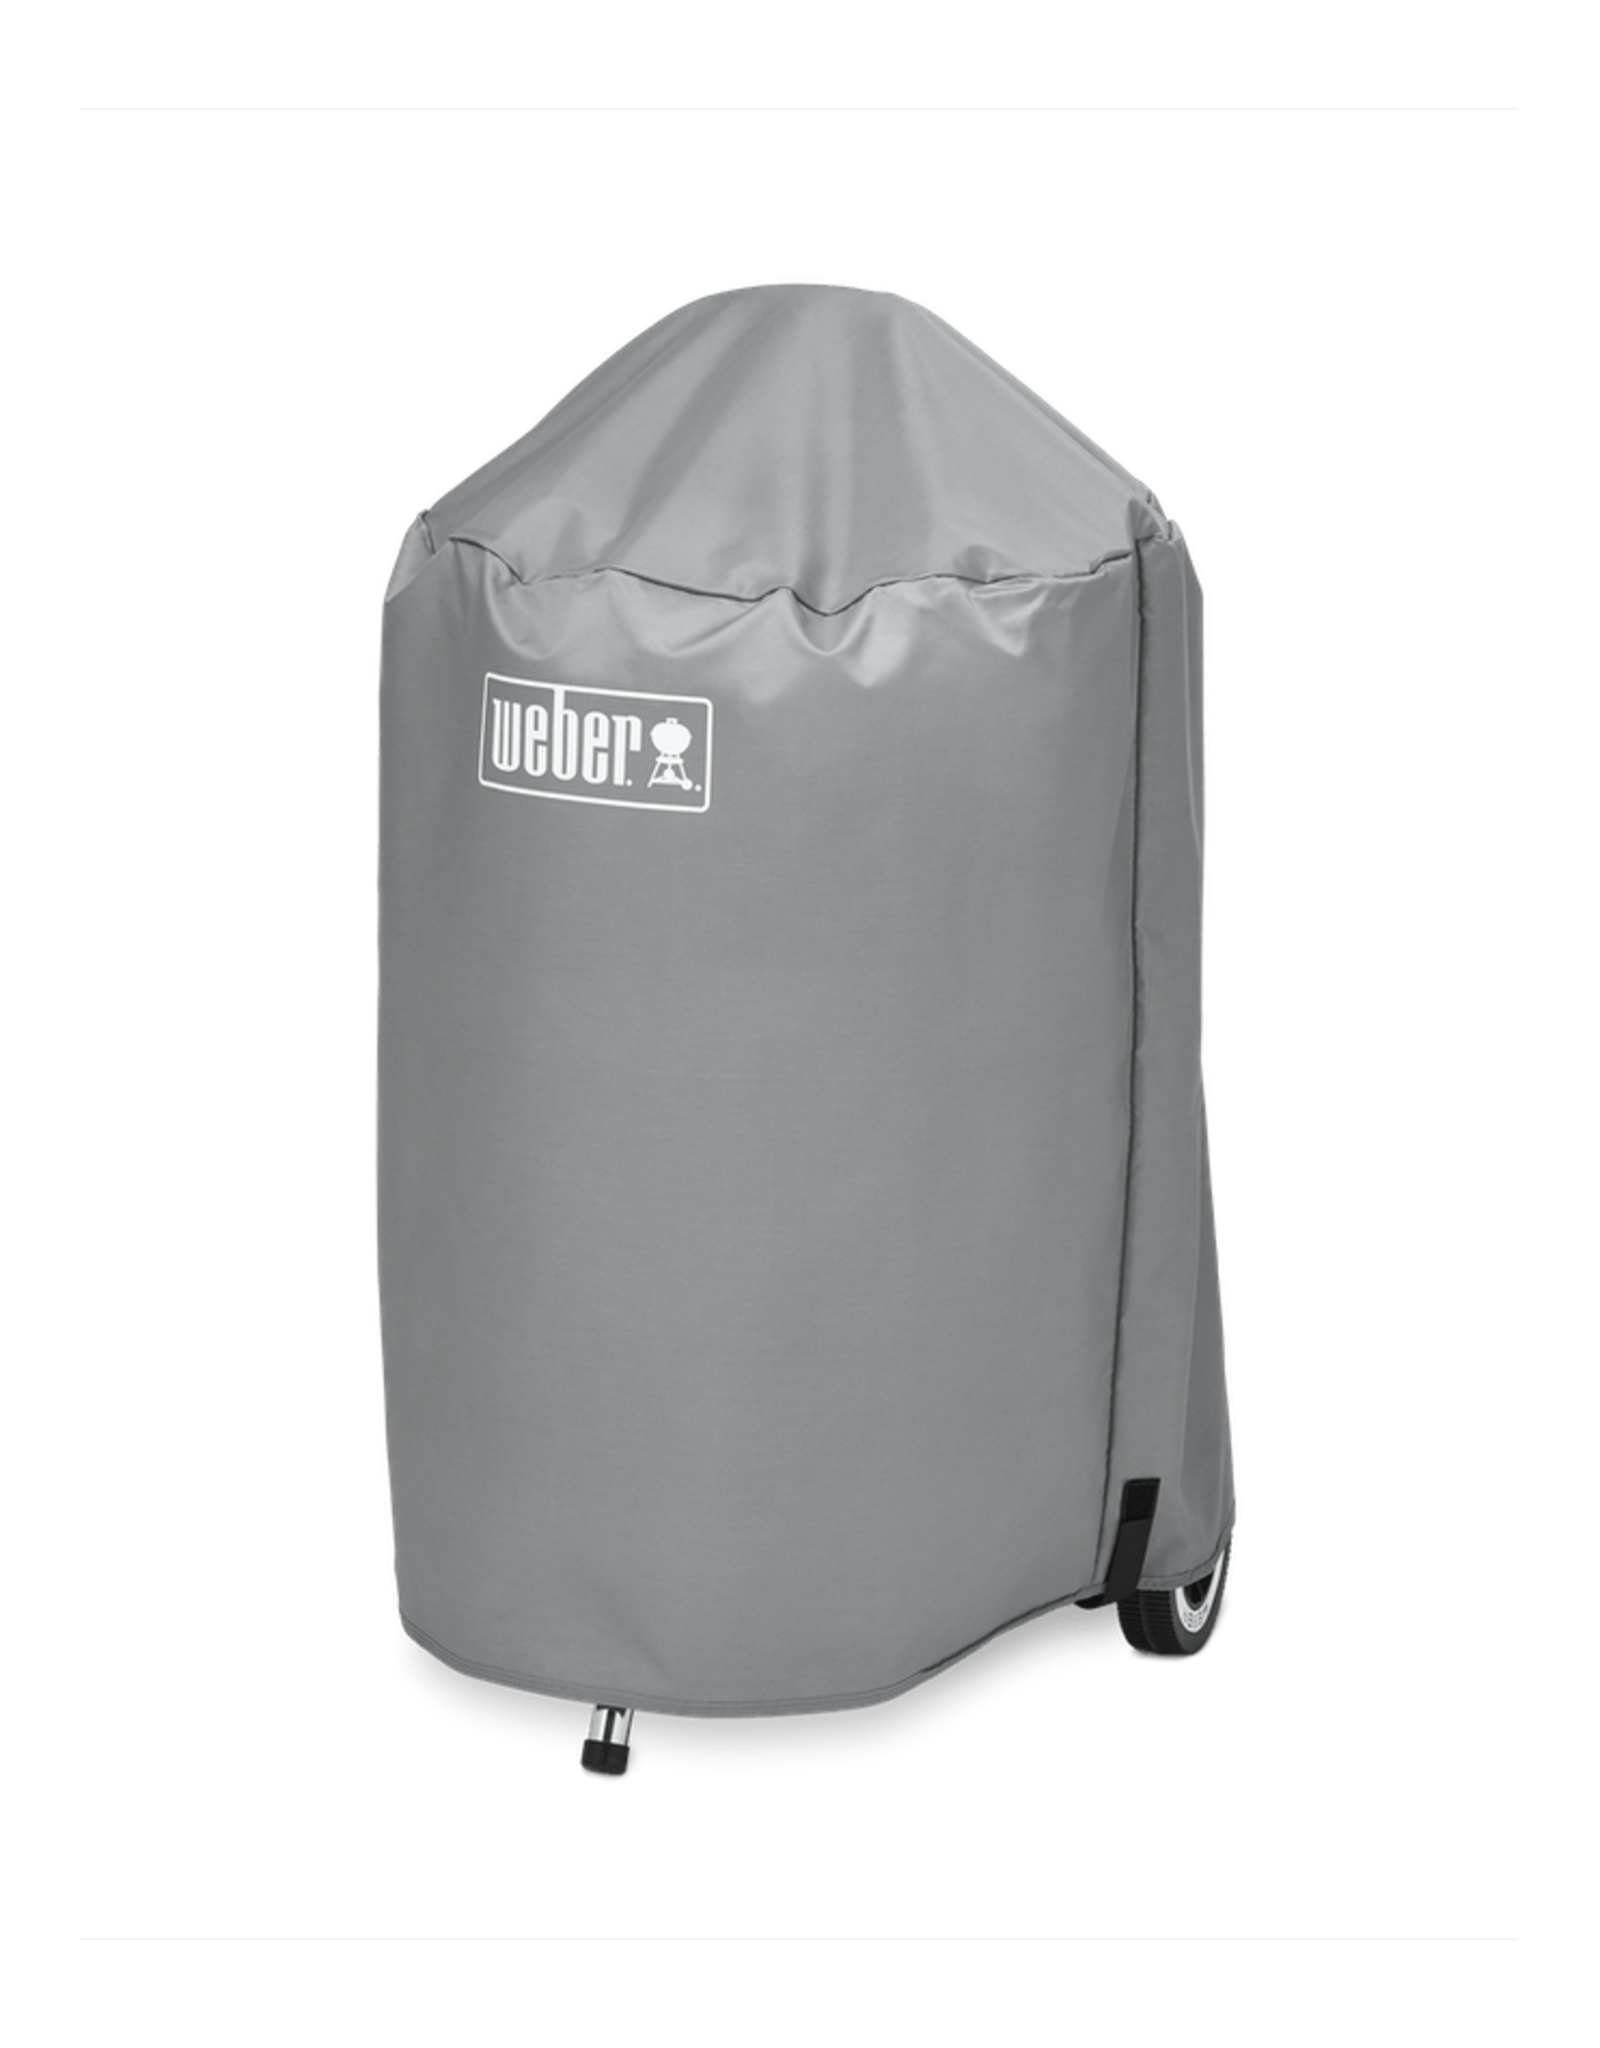 Weber Grill Cover - Fits 18'' charcoal grills